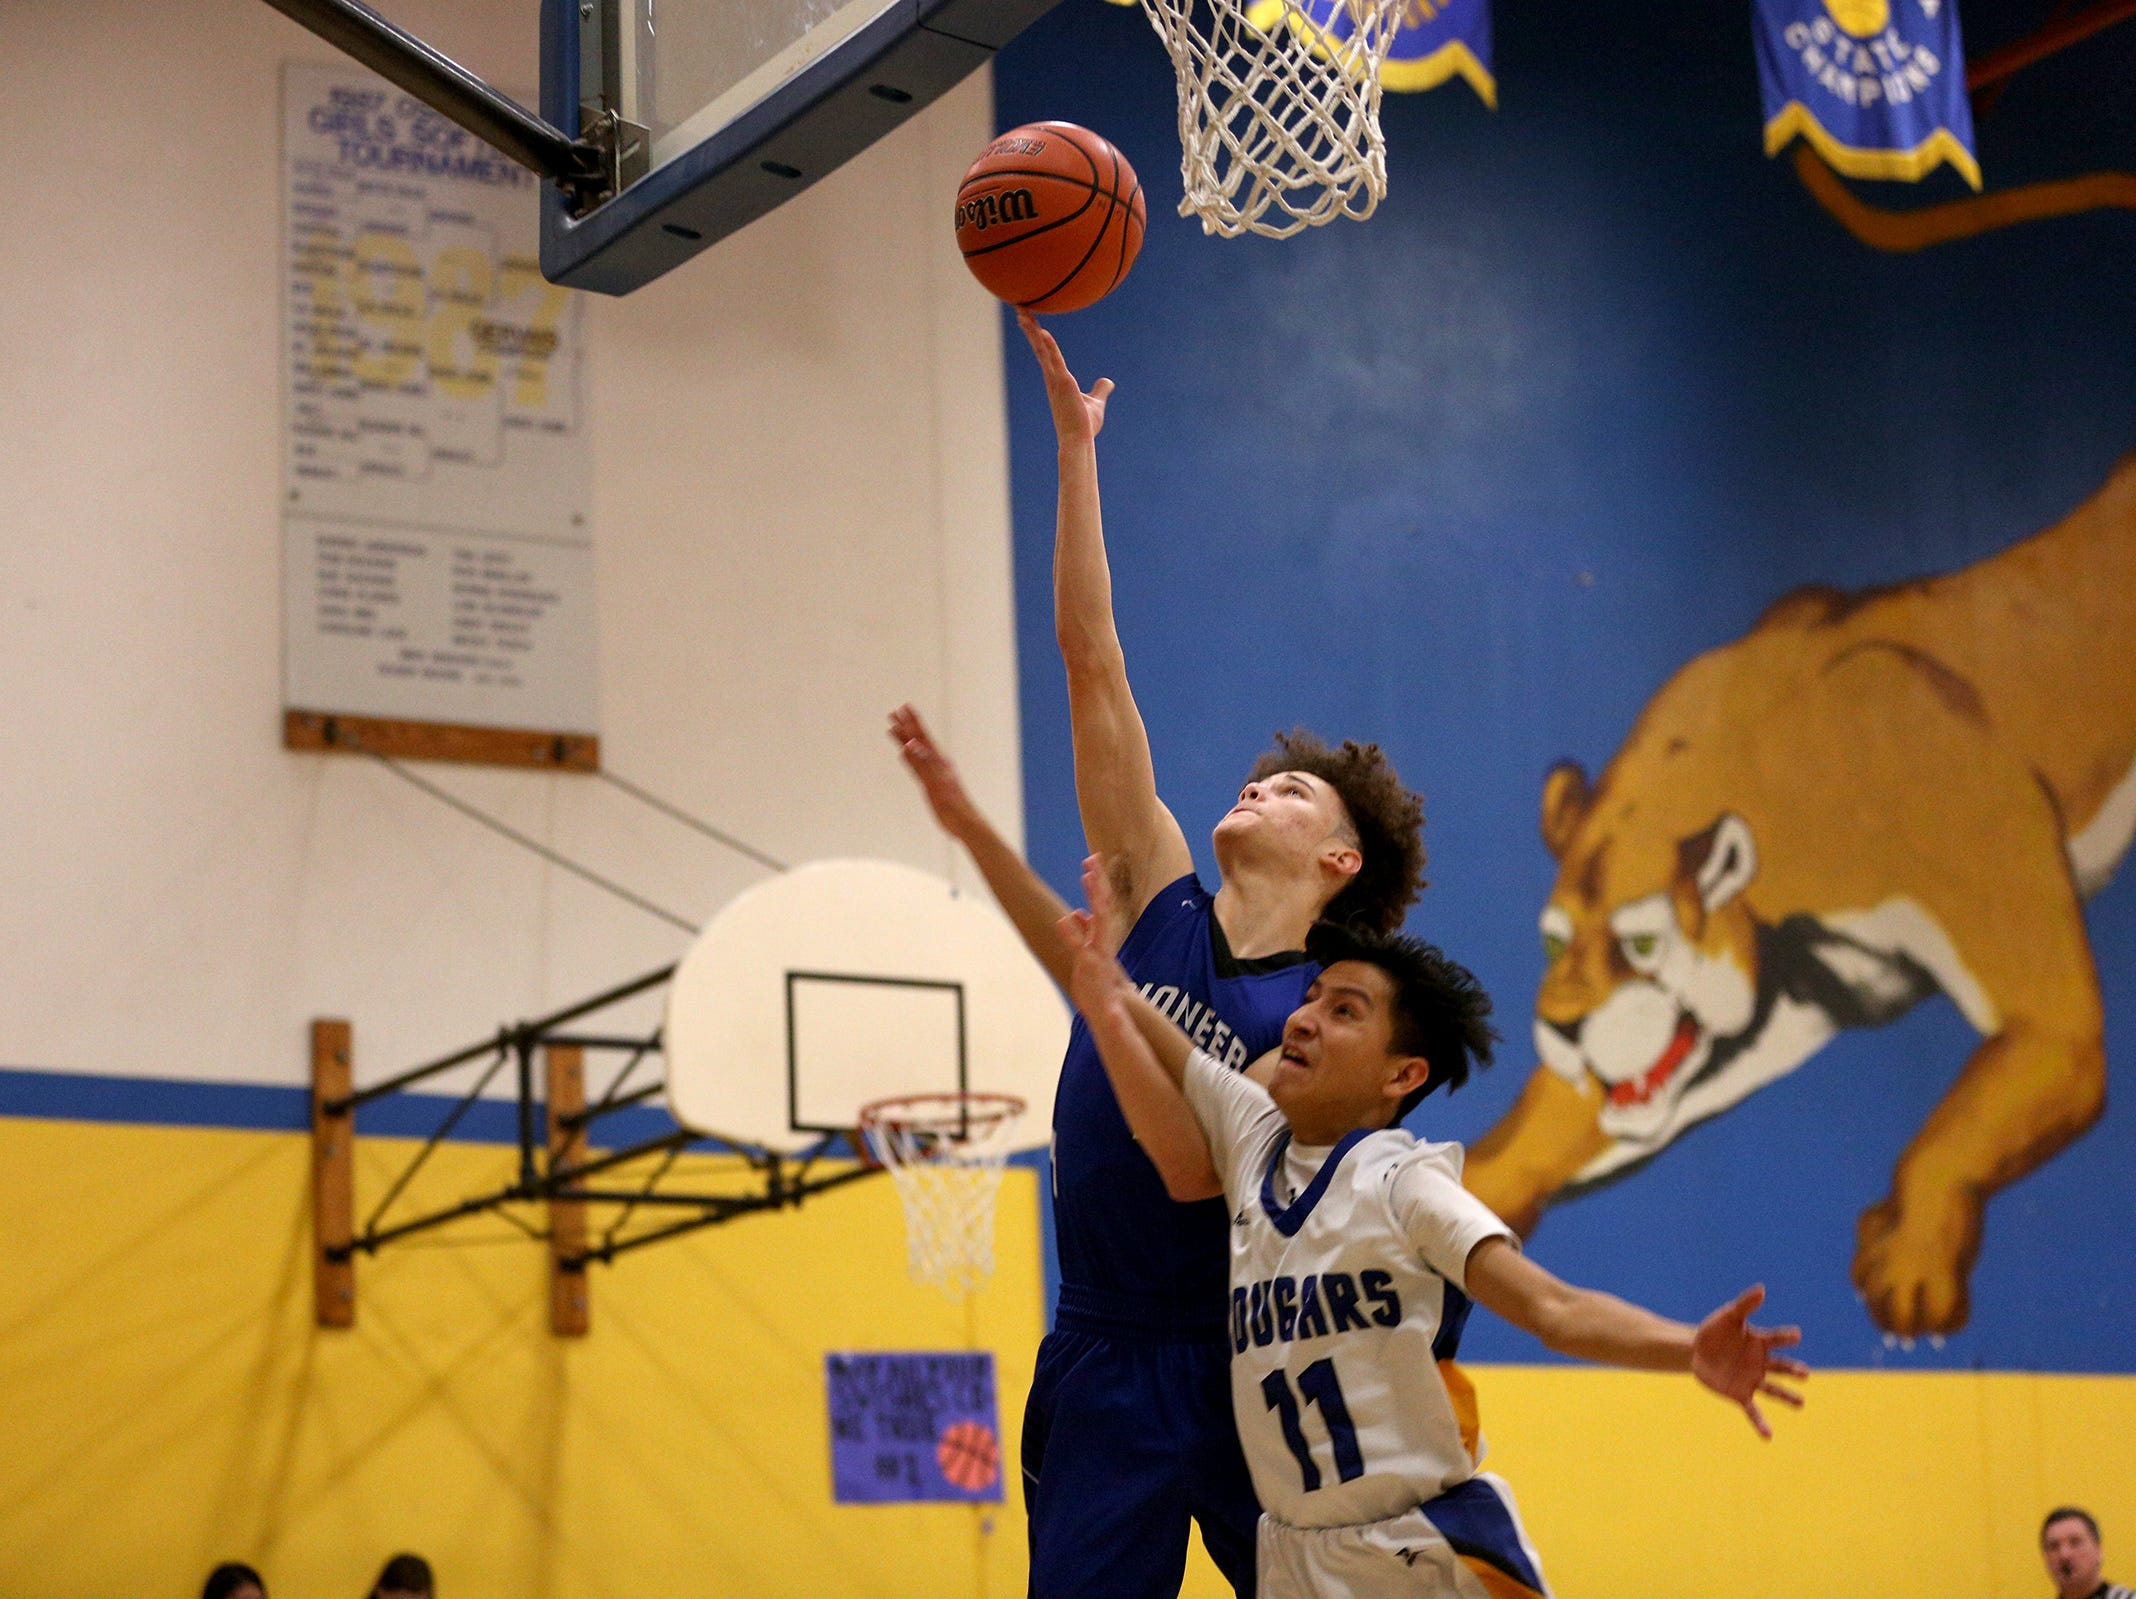 Western Christian's Johnny Williams (11) attempts a layup as Gervais' Armando Tarula (11) tries to defend him during the Gervais High School boys basketball game against Western Christian in Gervais on Friday, Feb. 1, 2019.